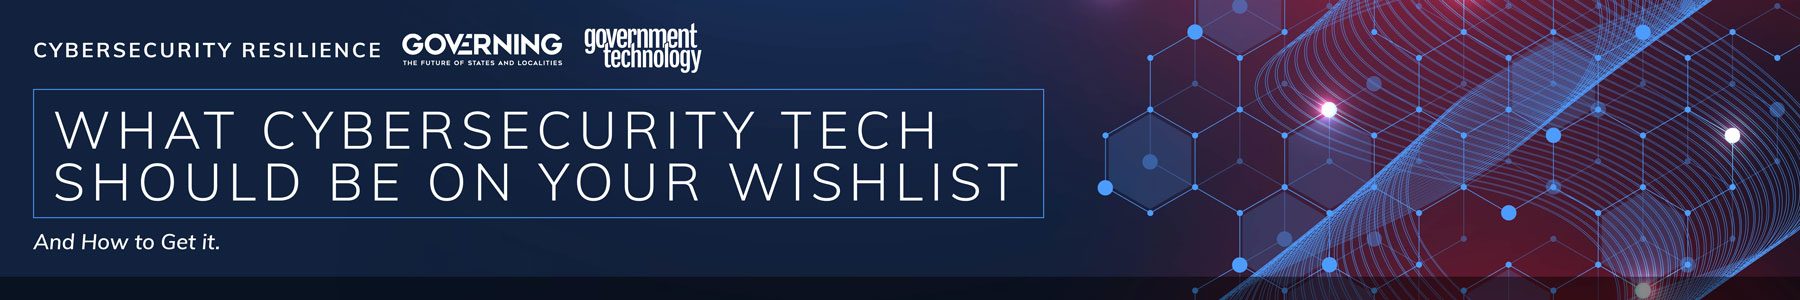 What Cybersecurity Tech Should Be On Your Wishlist - And How to Get it.